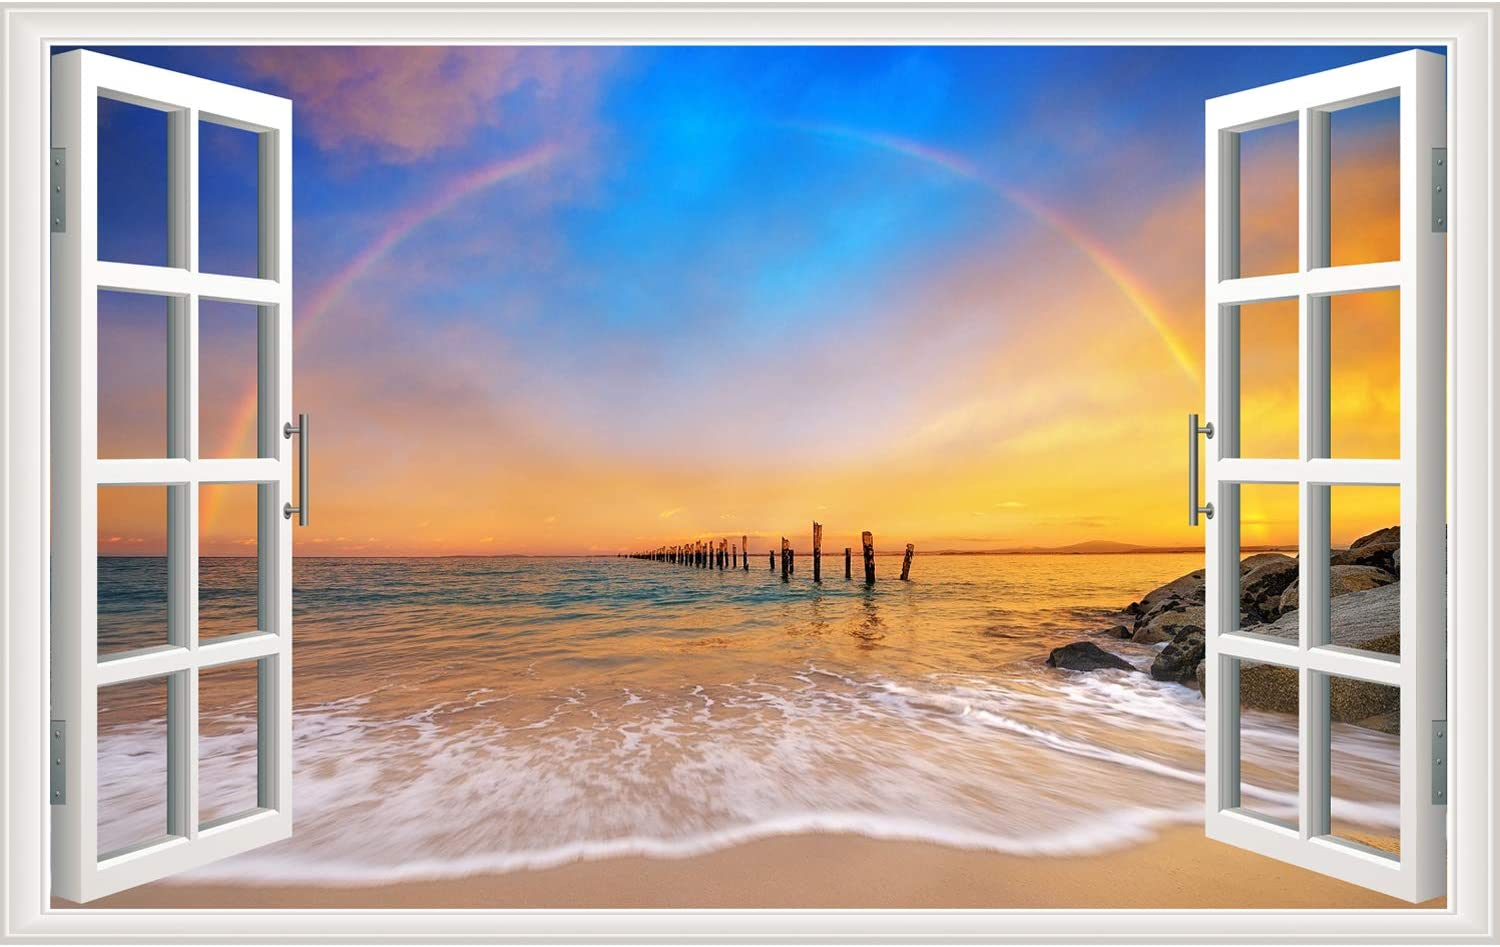 Rajahubri 3D Beach Wall Stickers Fake Window Wall Decals Seascape of Rainbow Window View Wall Stickers Removable Sunset Wall Decal for Office Bedroom